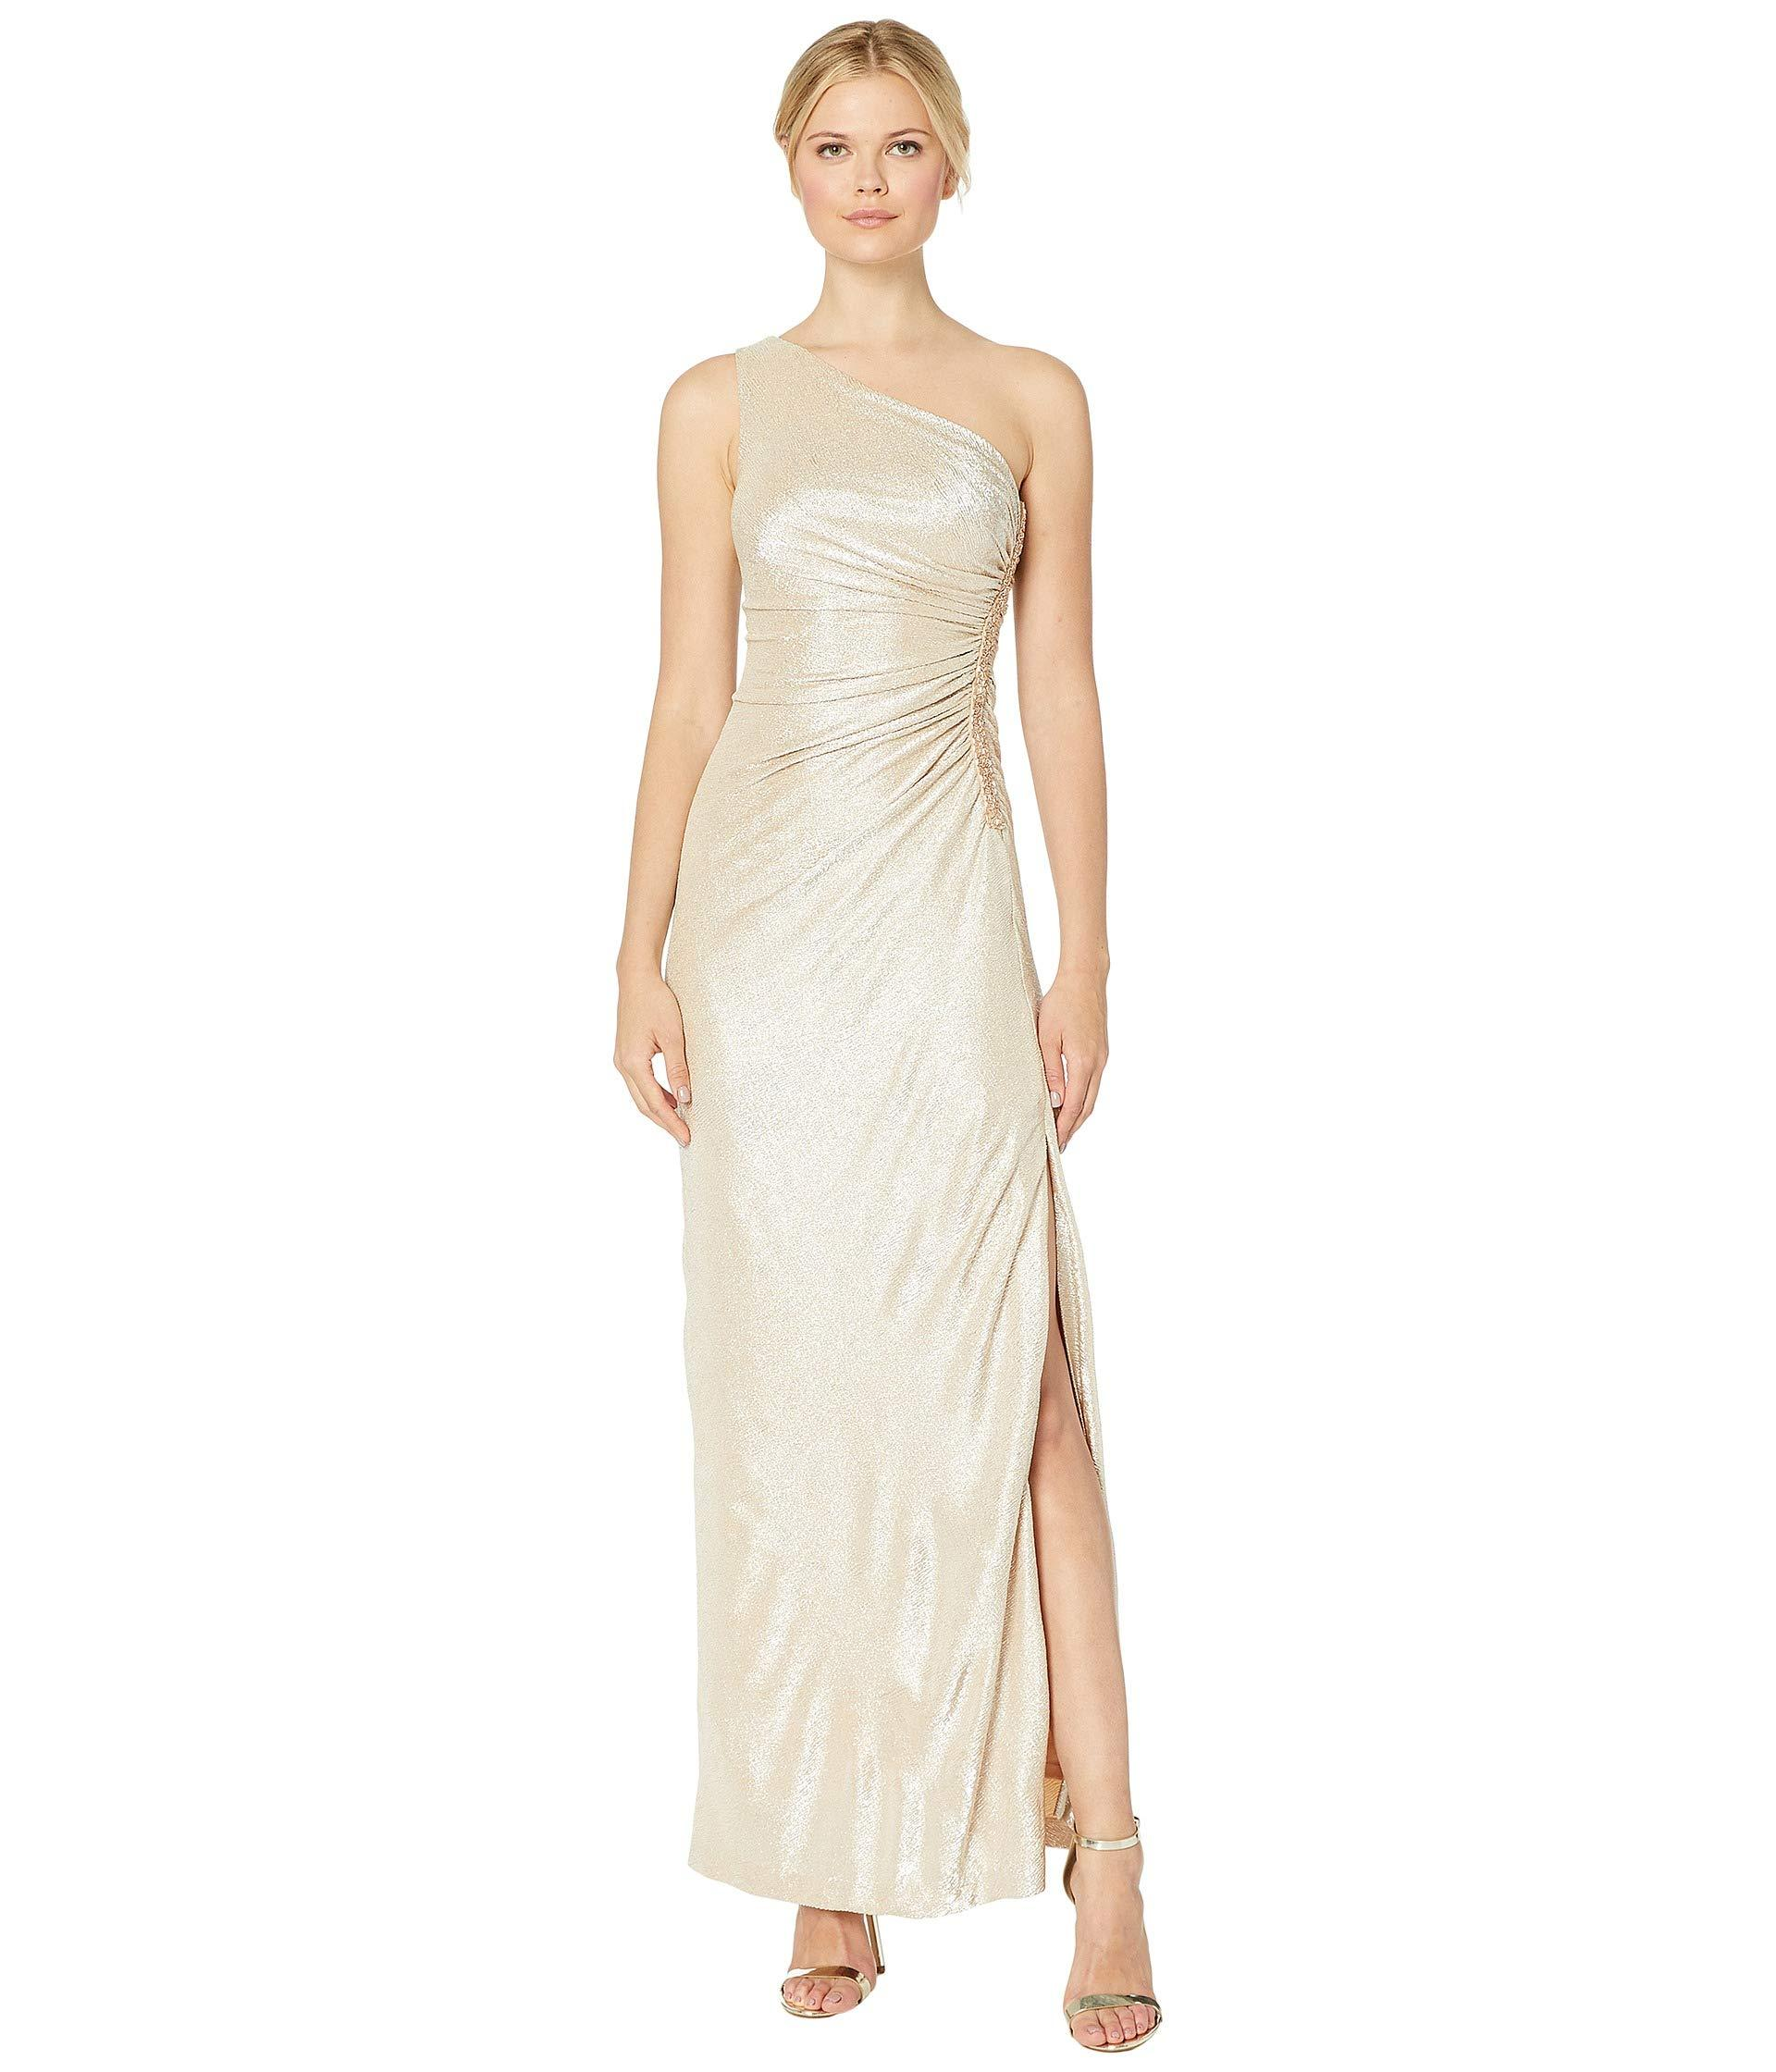 789ad44e861e Lyst - Calvin Klein One Shoulder Ruched Gown (buff/silver) Women's ...